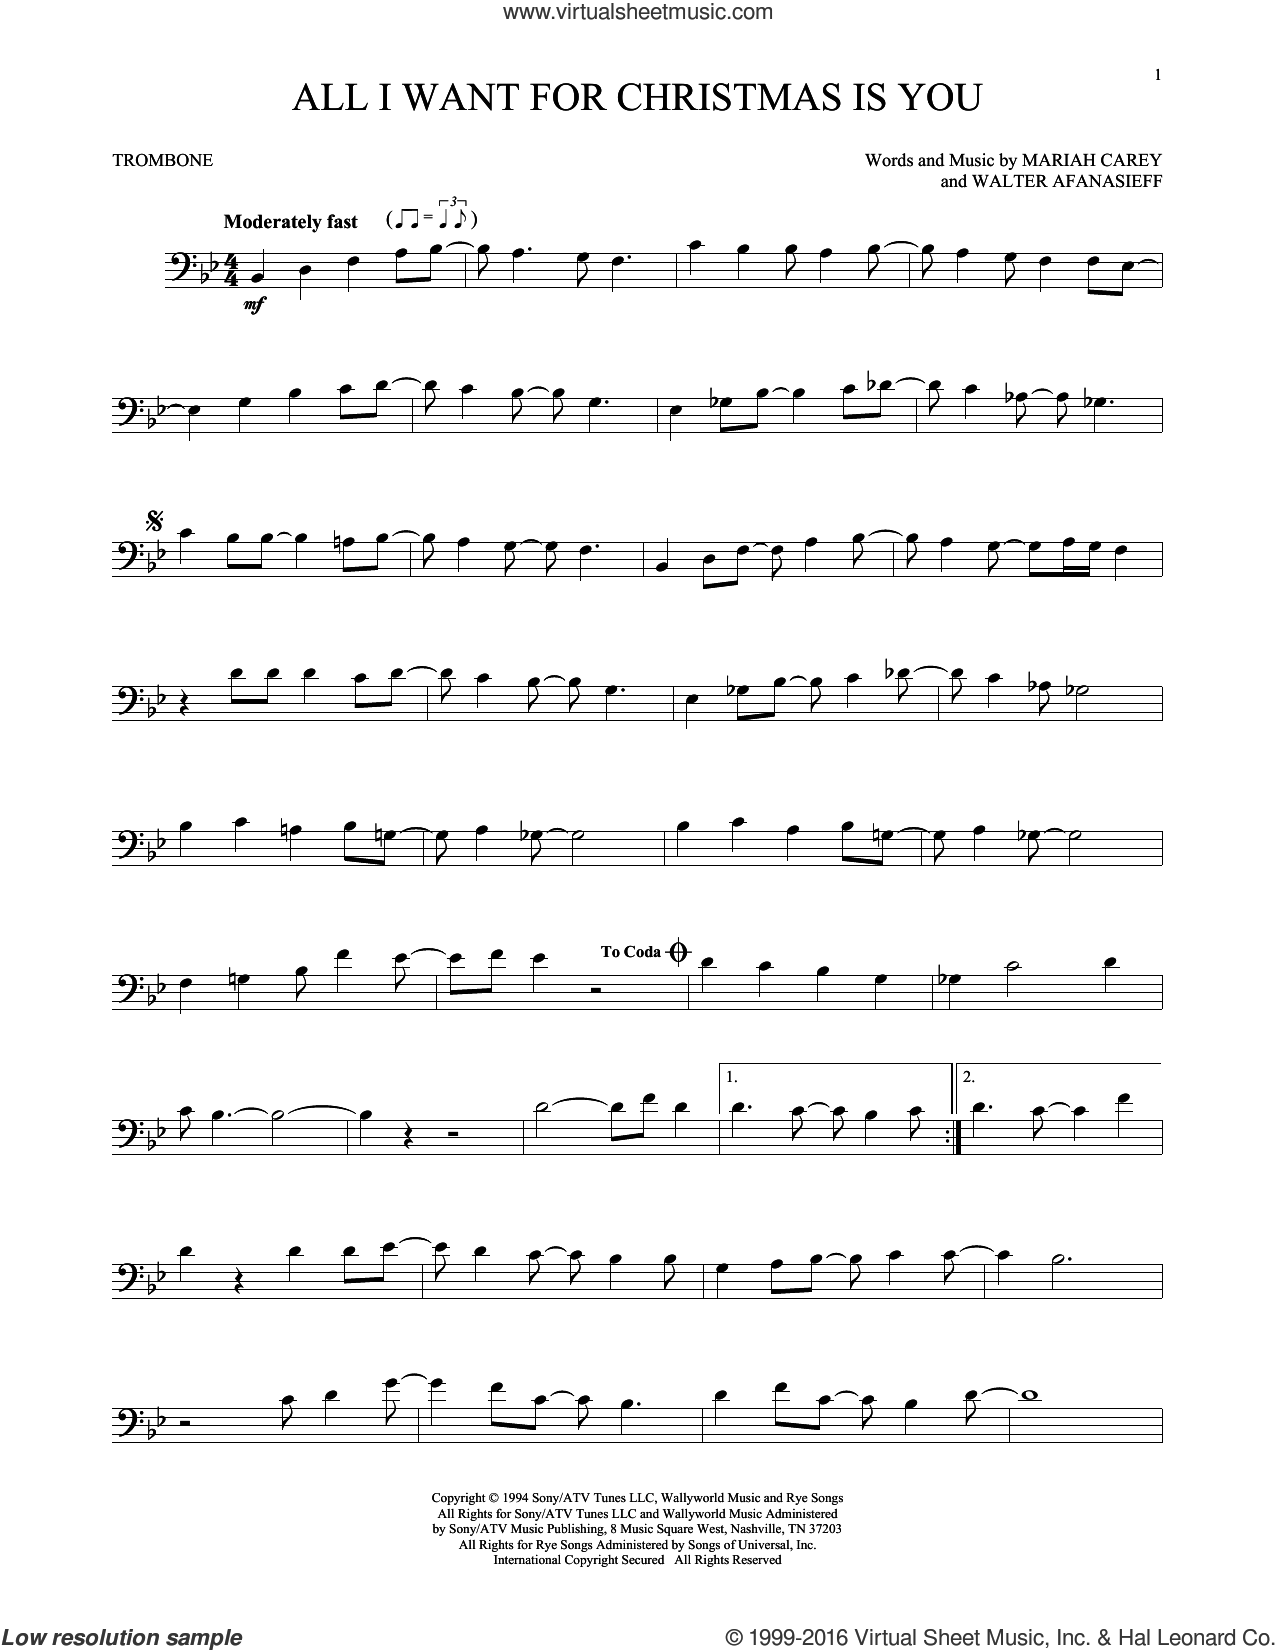 All I Want For Christmas Is You sheet music for trombone solo by Walter Afanasieff and Mariah Carey. Score Image Preview.